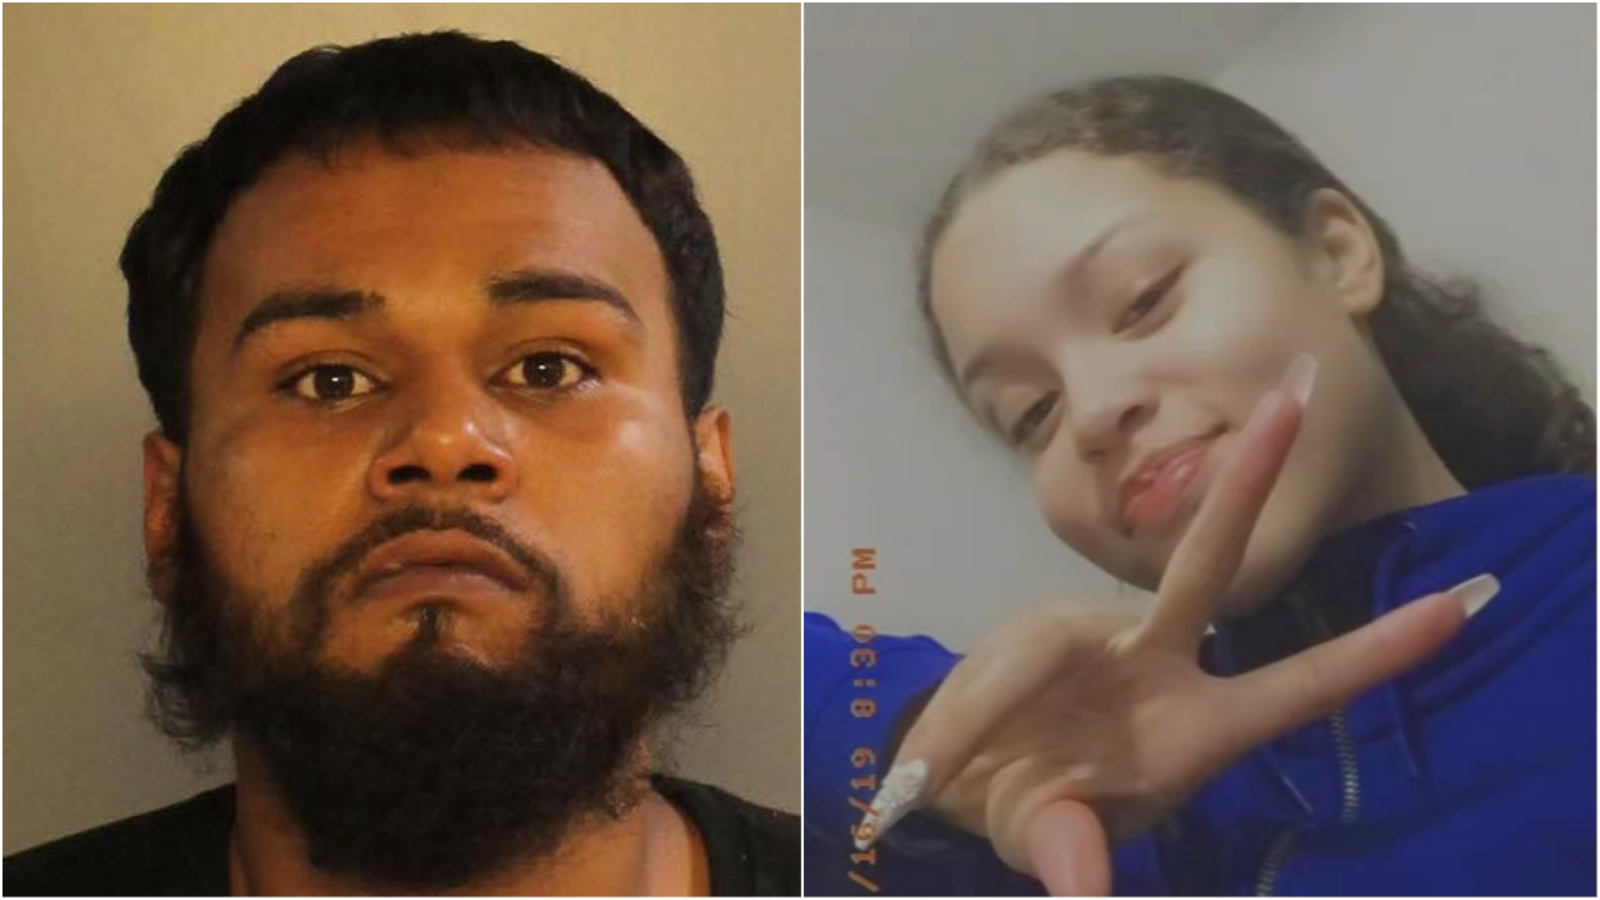 'I shot her': Philly man arrested in 13-year-old's murder bragged after shooting, court docs allege